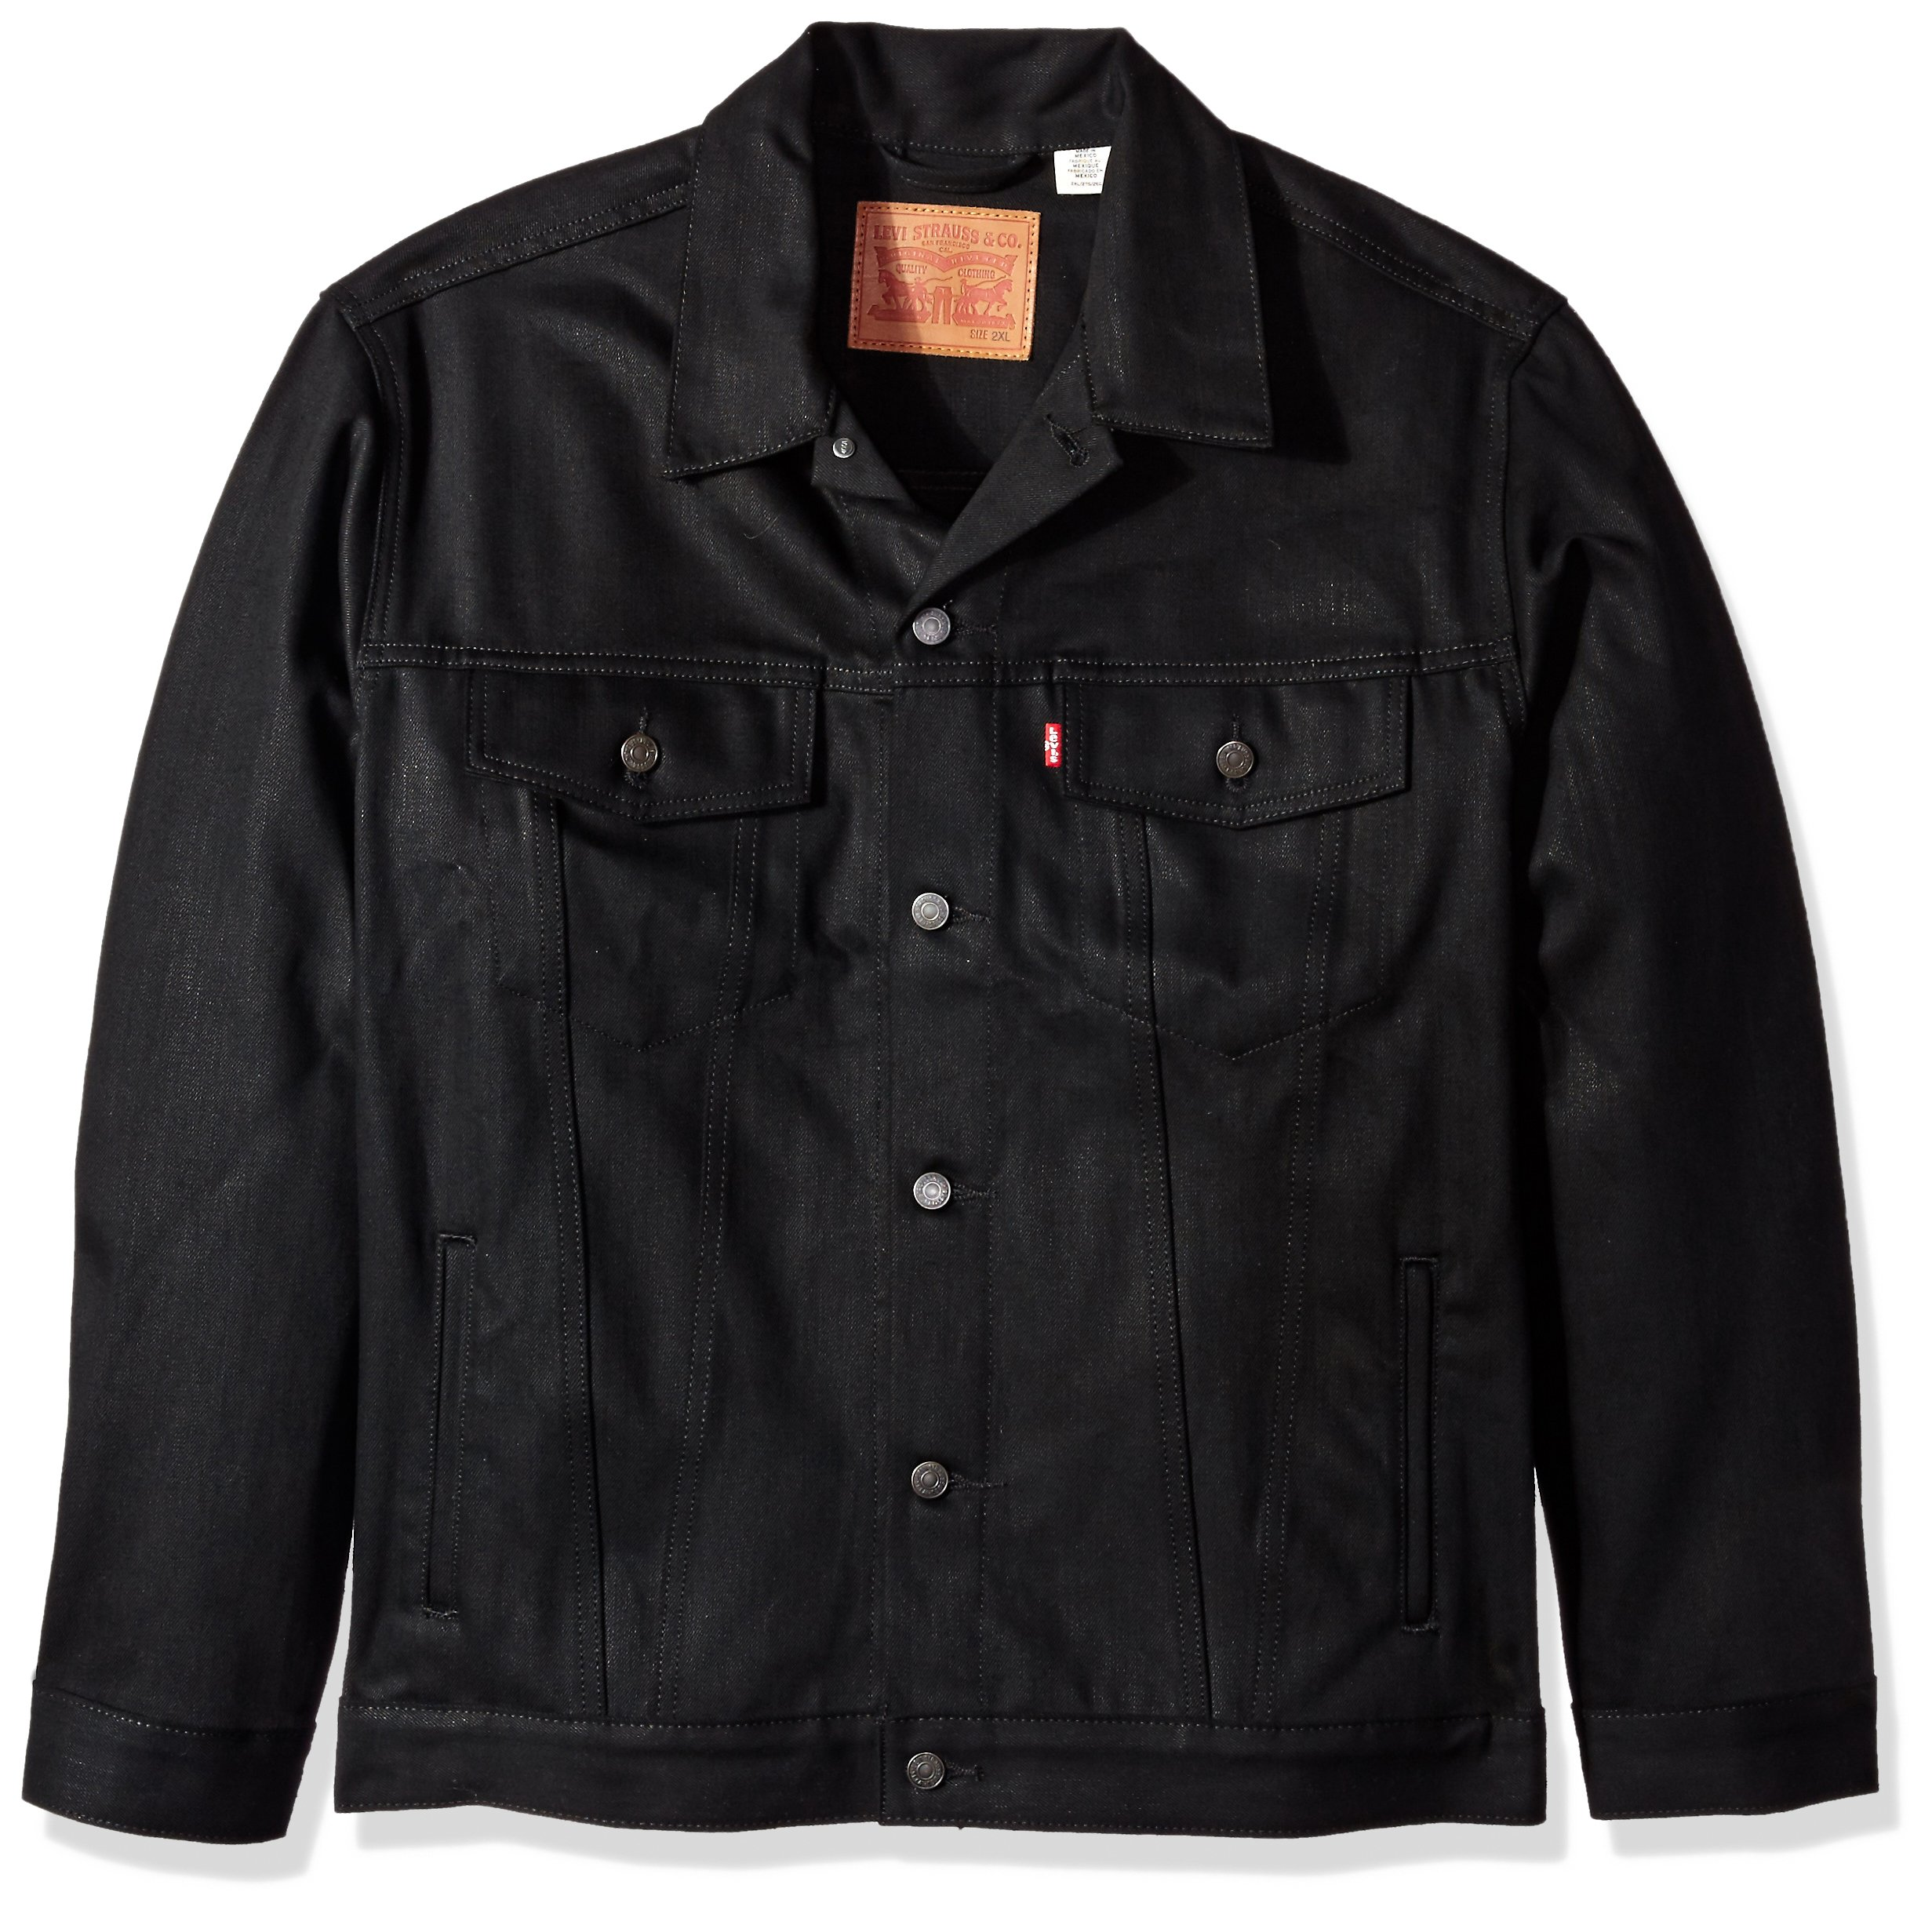 Levi's Men's Big and Tall Trucker Jacket, Polished Black, 4XL